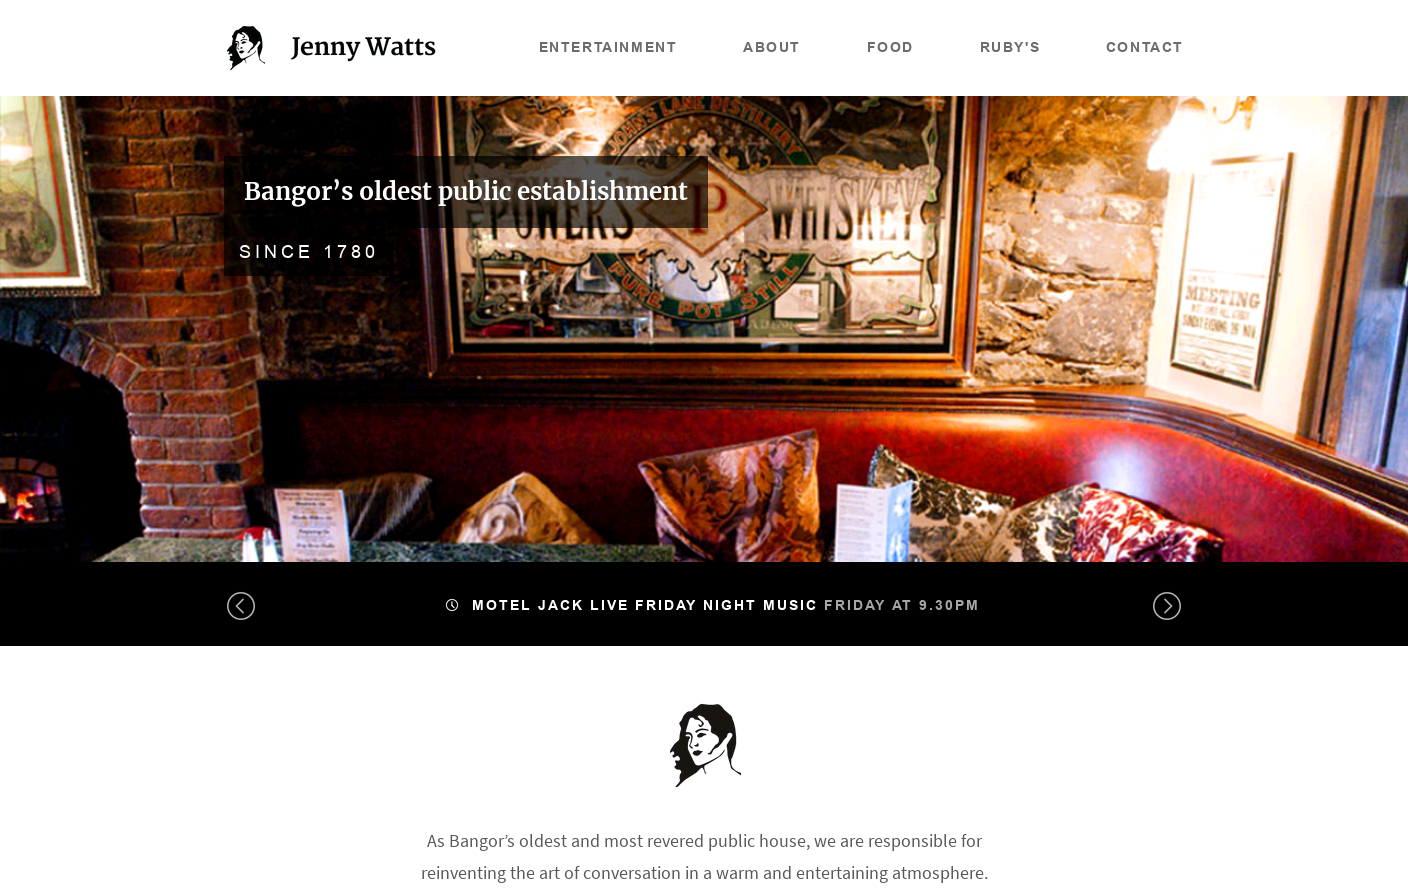 Welcome to Jenny Watts Bar, located in the heart of Bangor's nightlife | Je